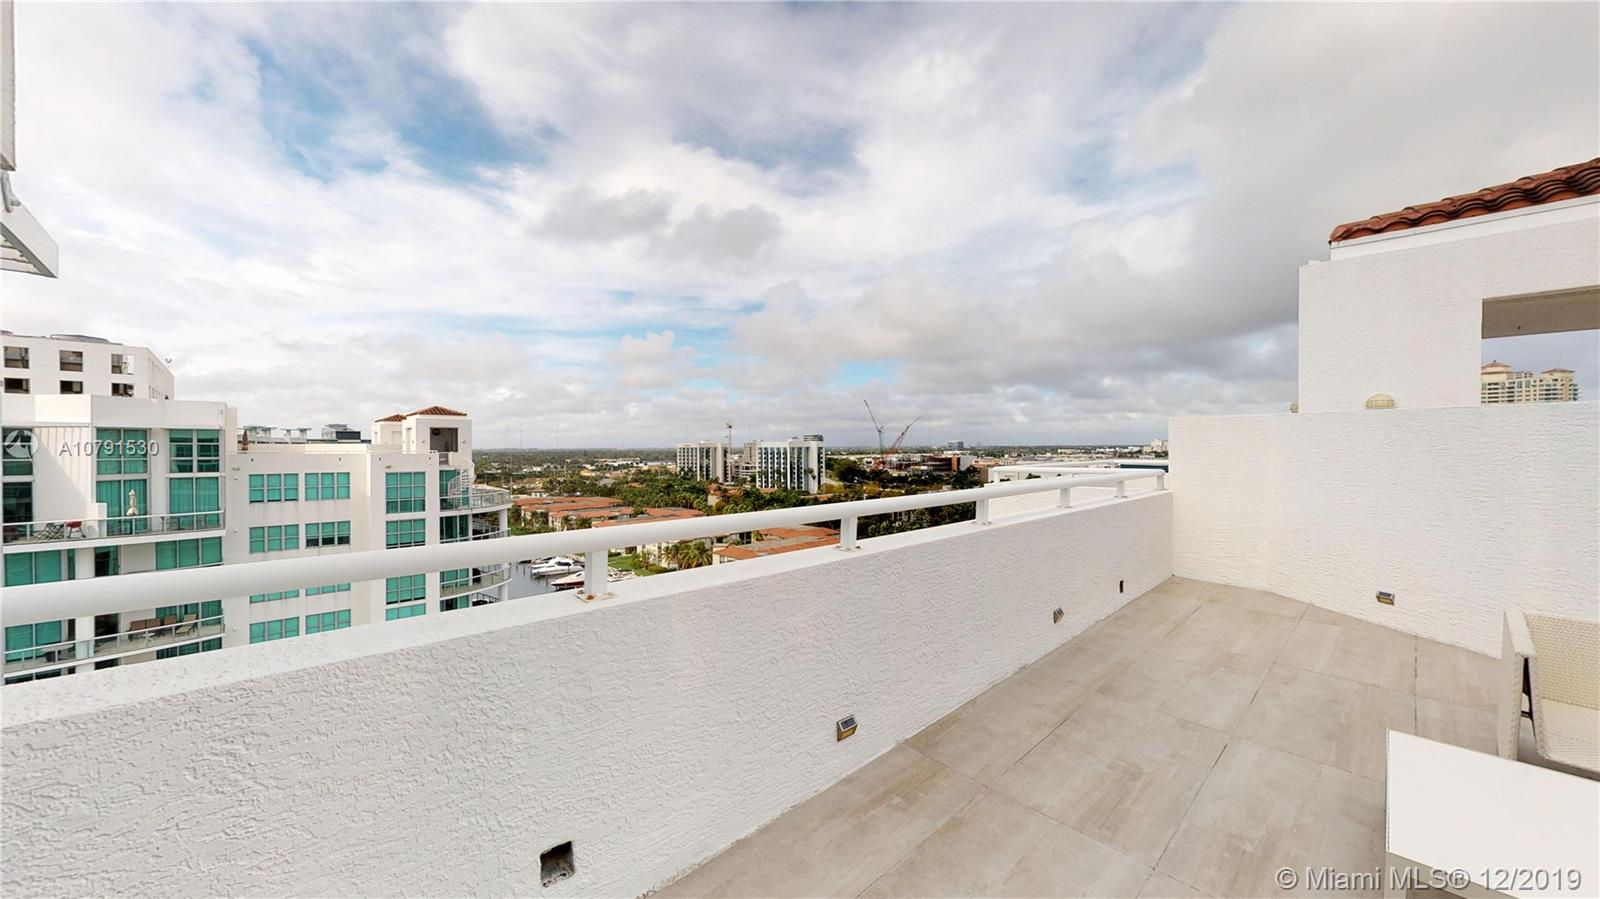 Photo of 3131 188th St #2-1203, Aventura, Florida, 33180 -